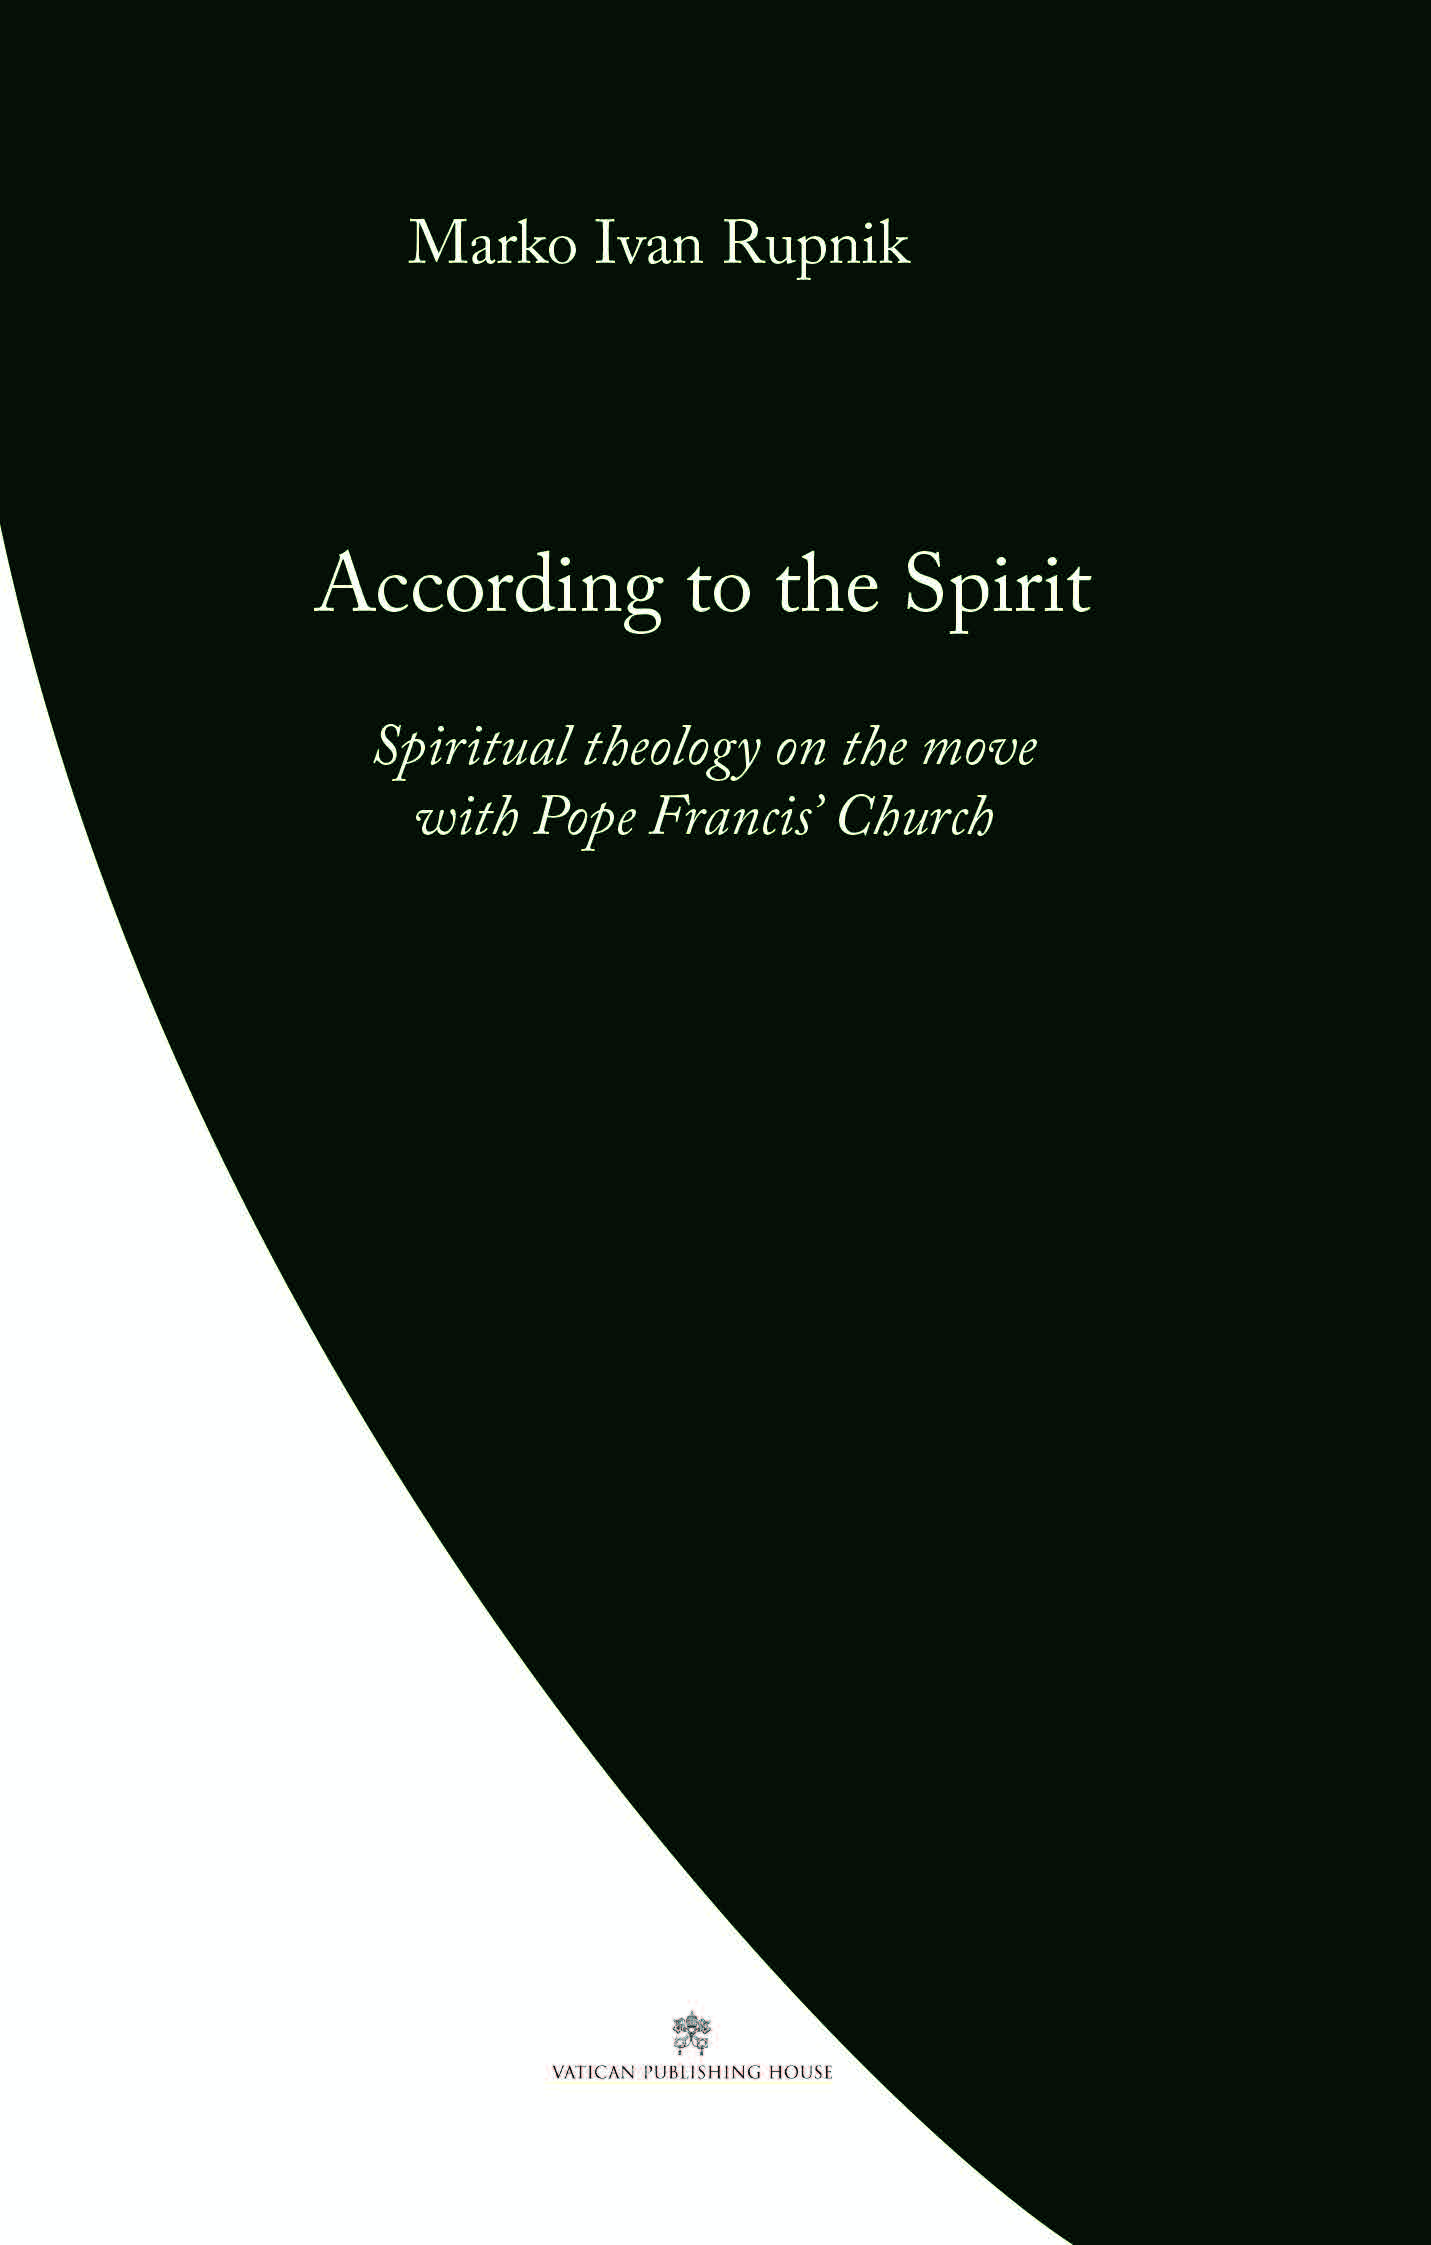 According to the Spirit  Spiritual theology on the move with Pope Francis' Church / Marko Ivan Rupnik